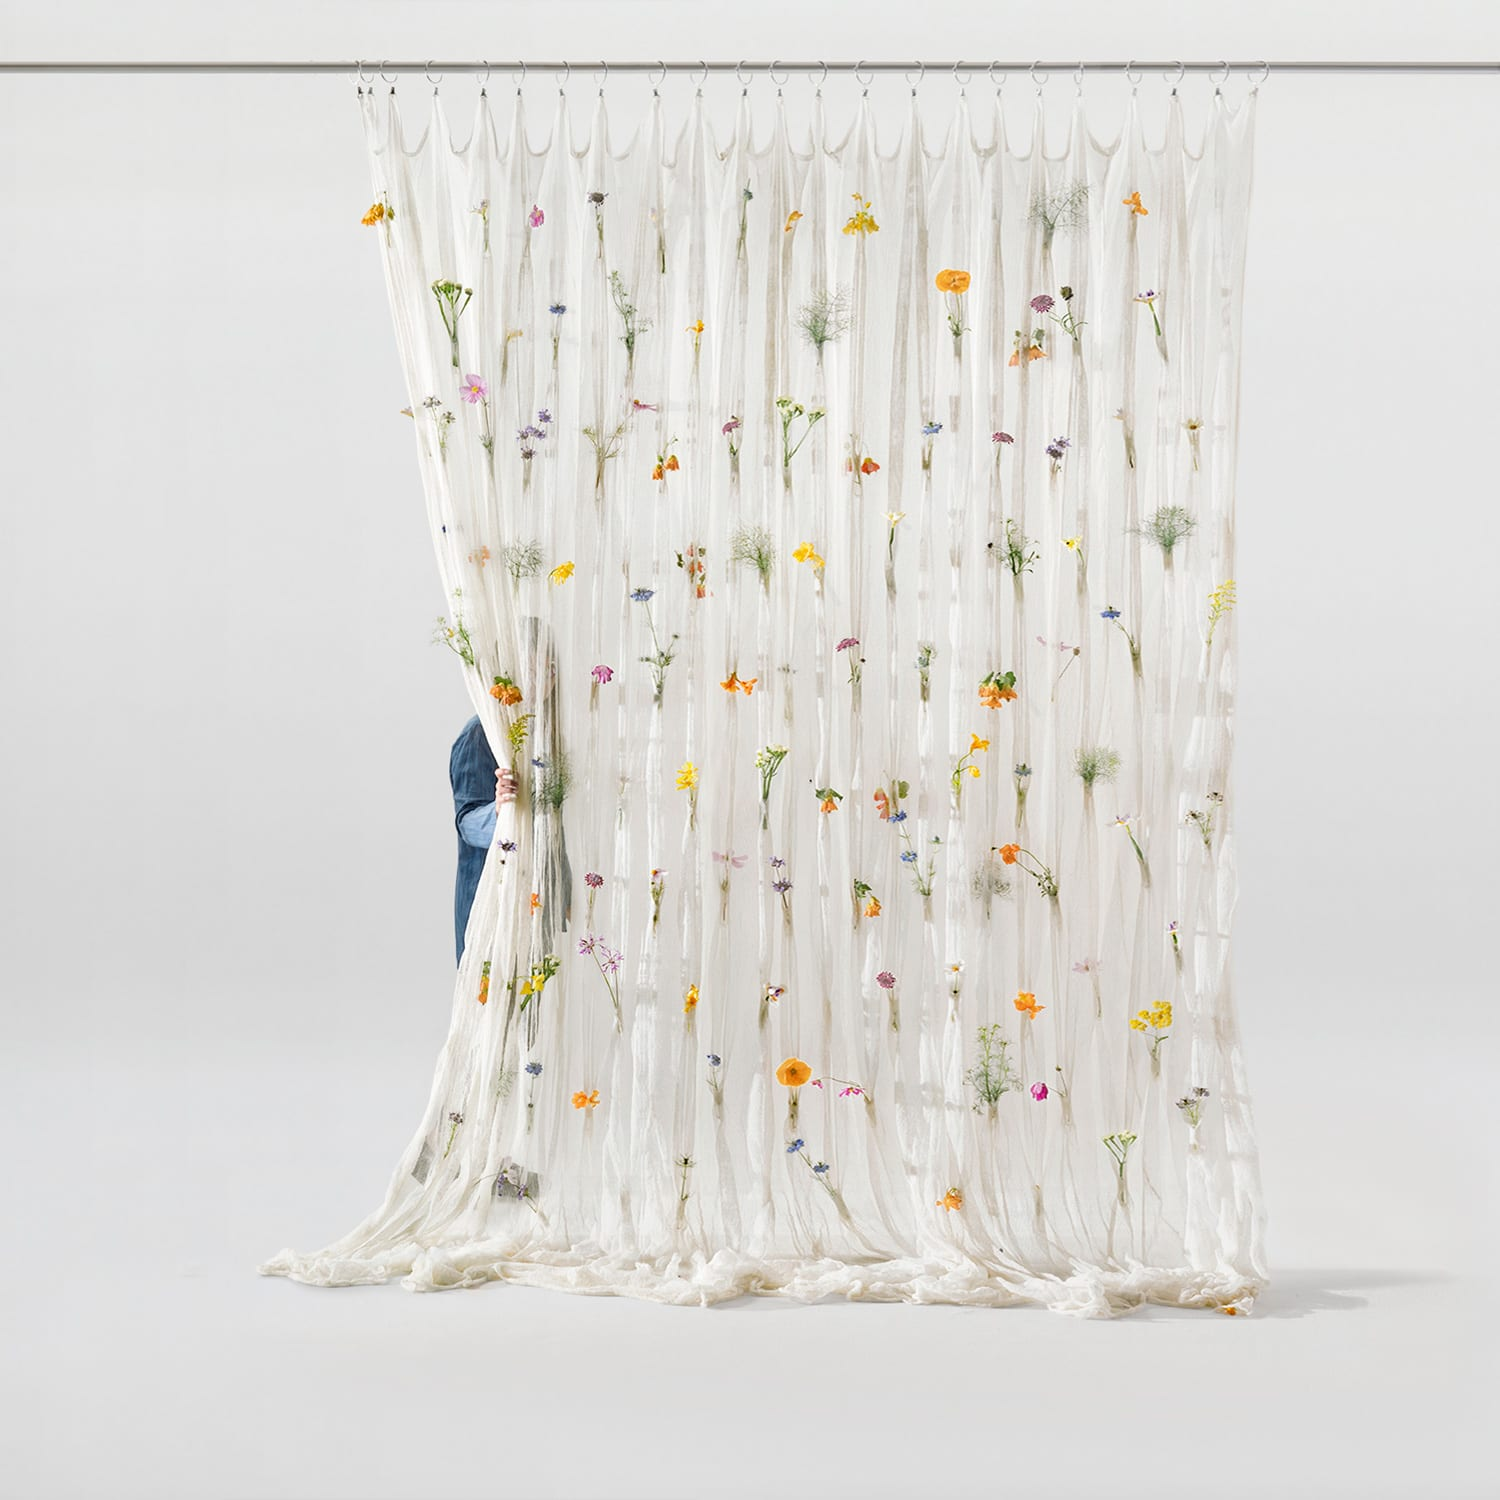 Living Divider: Draped Flowers Curtain by Akane Moriyama for Umé Studio | Yellowtrace